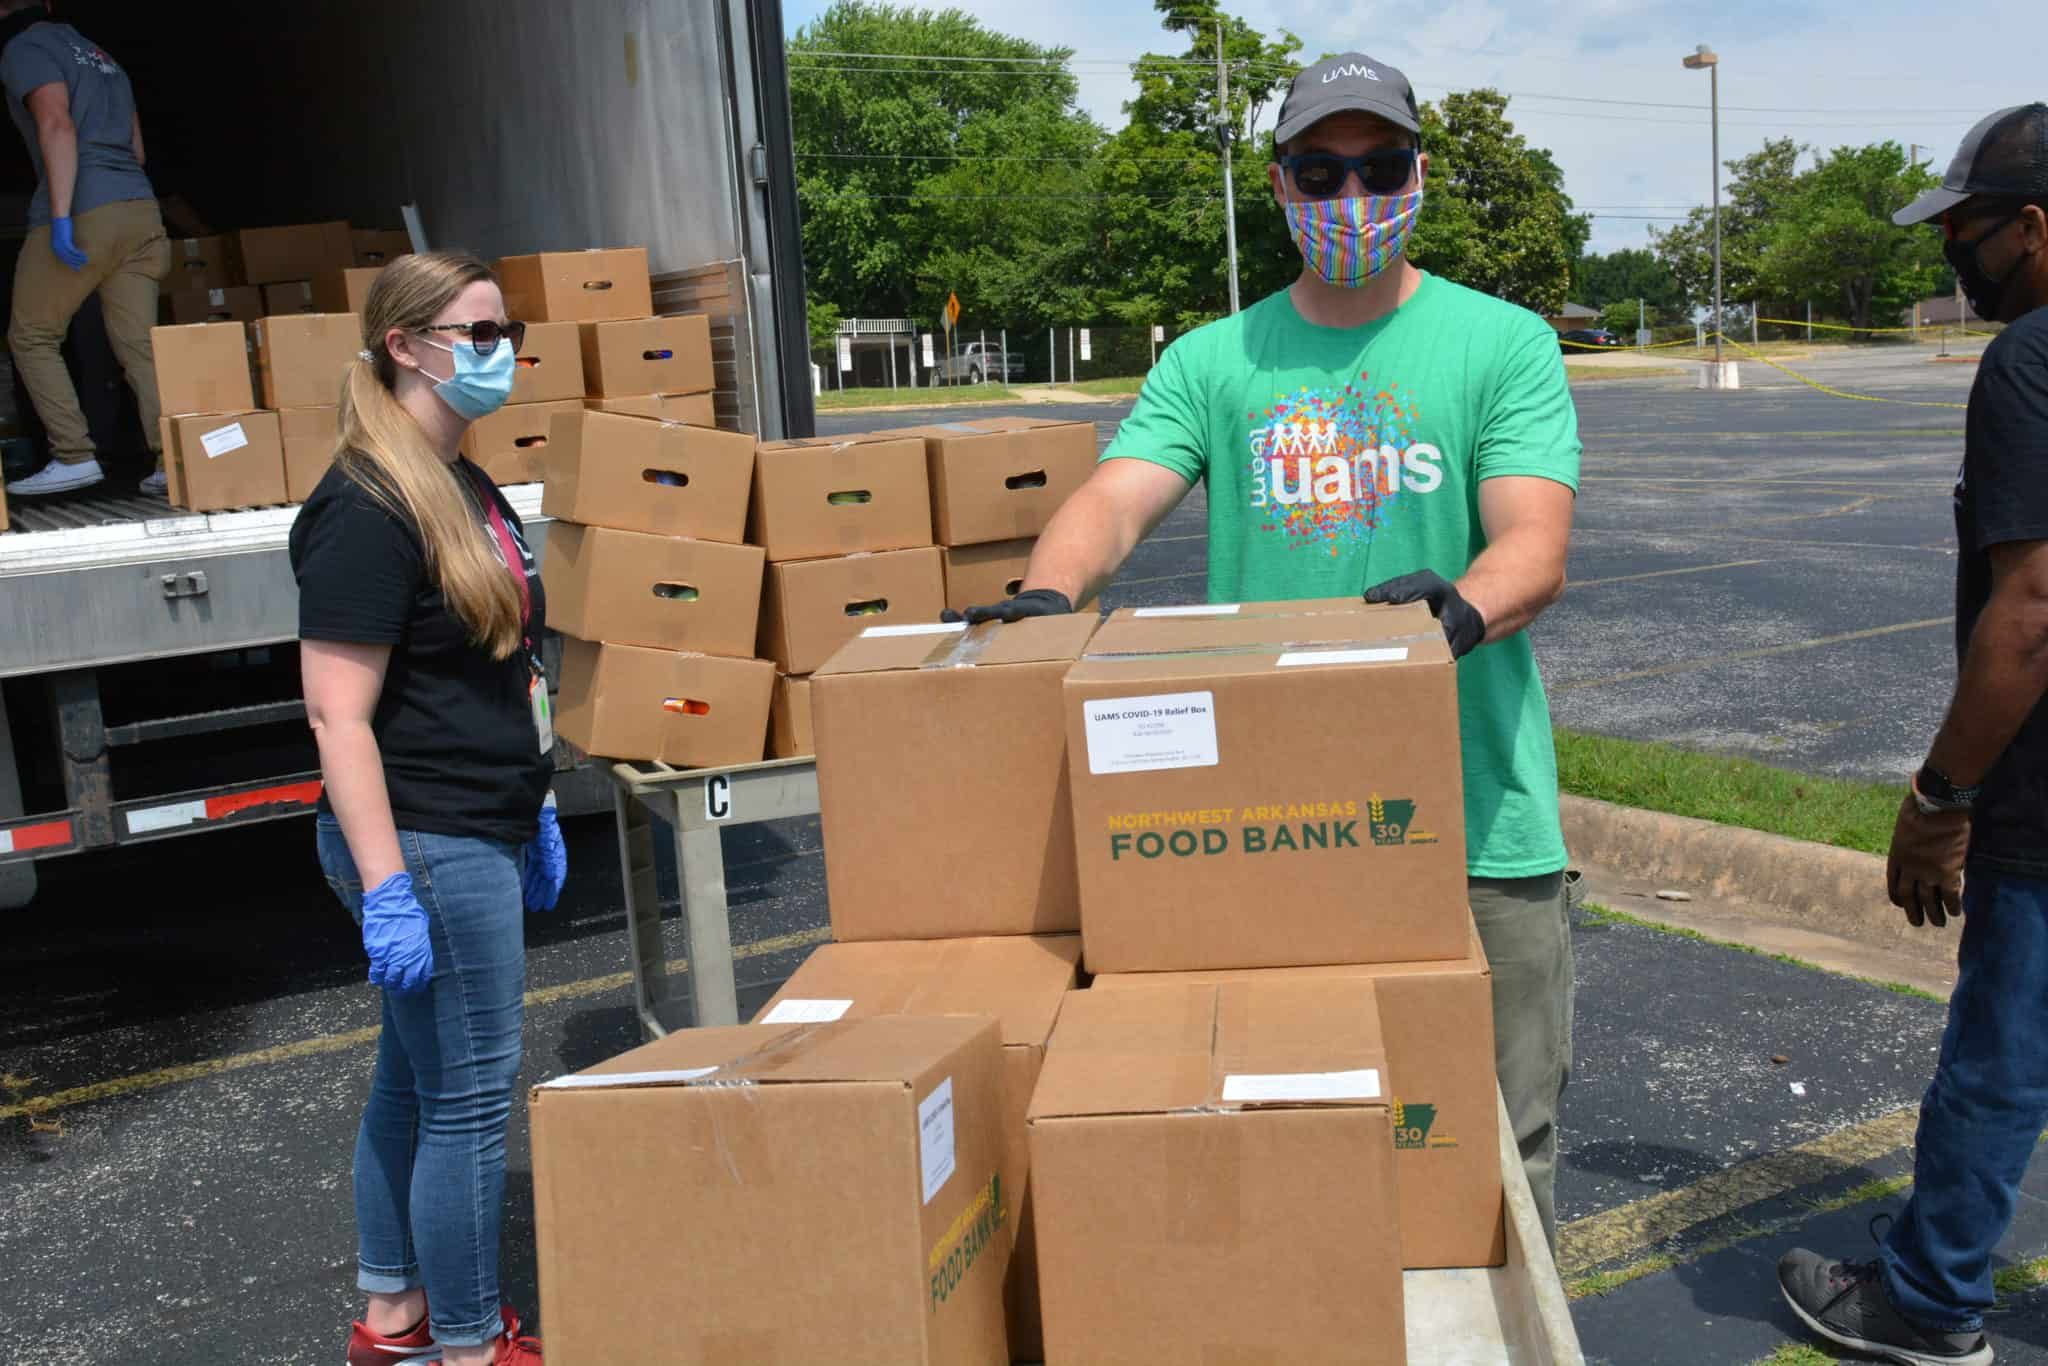 Peter Cooper of UAMS Northwest unloads a truck of food relief boxes.